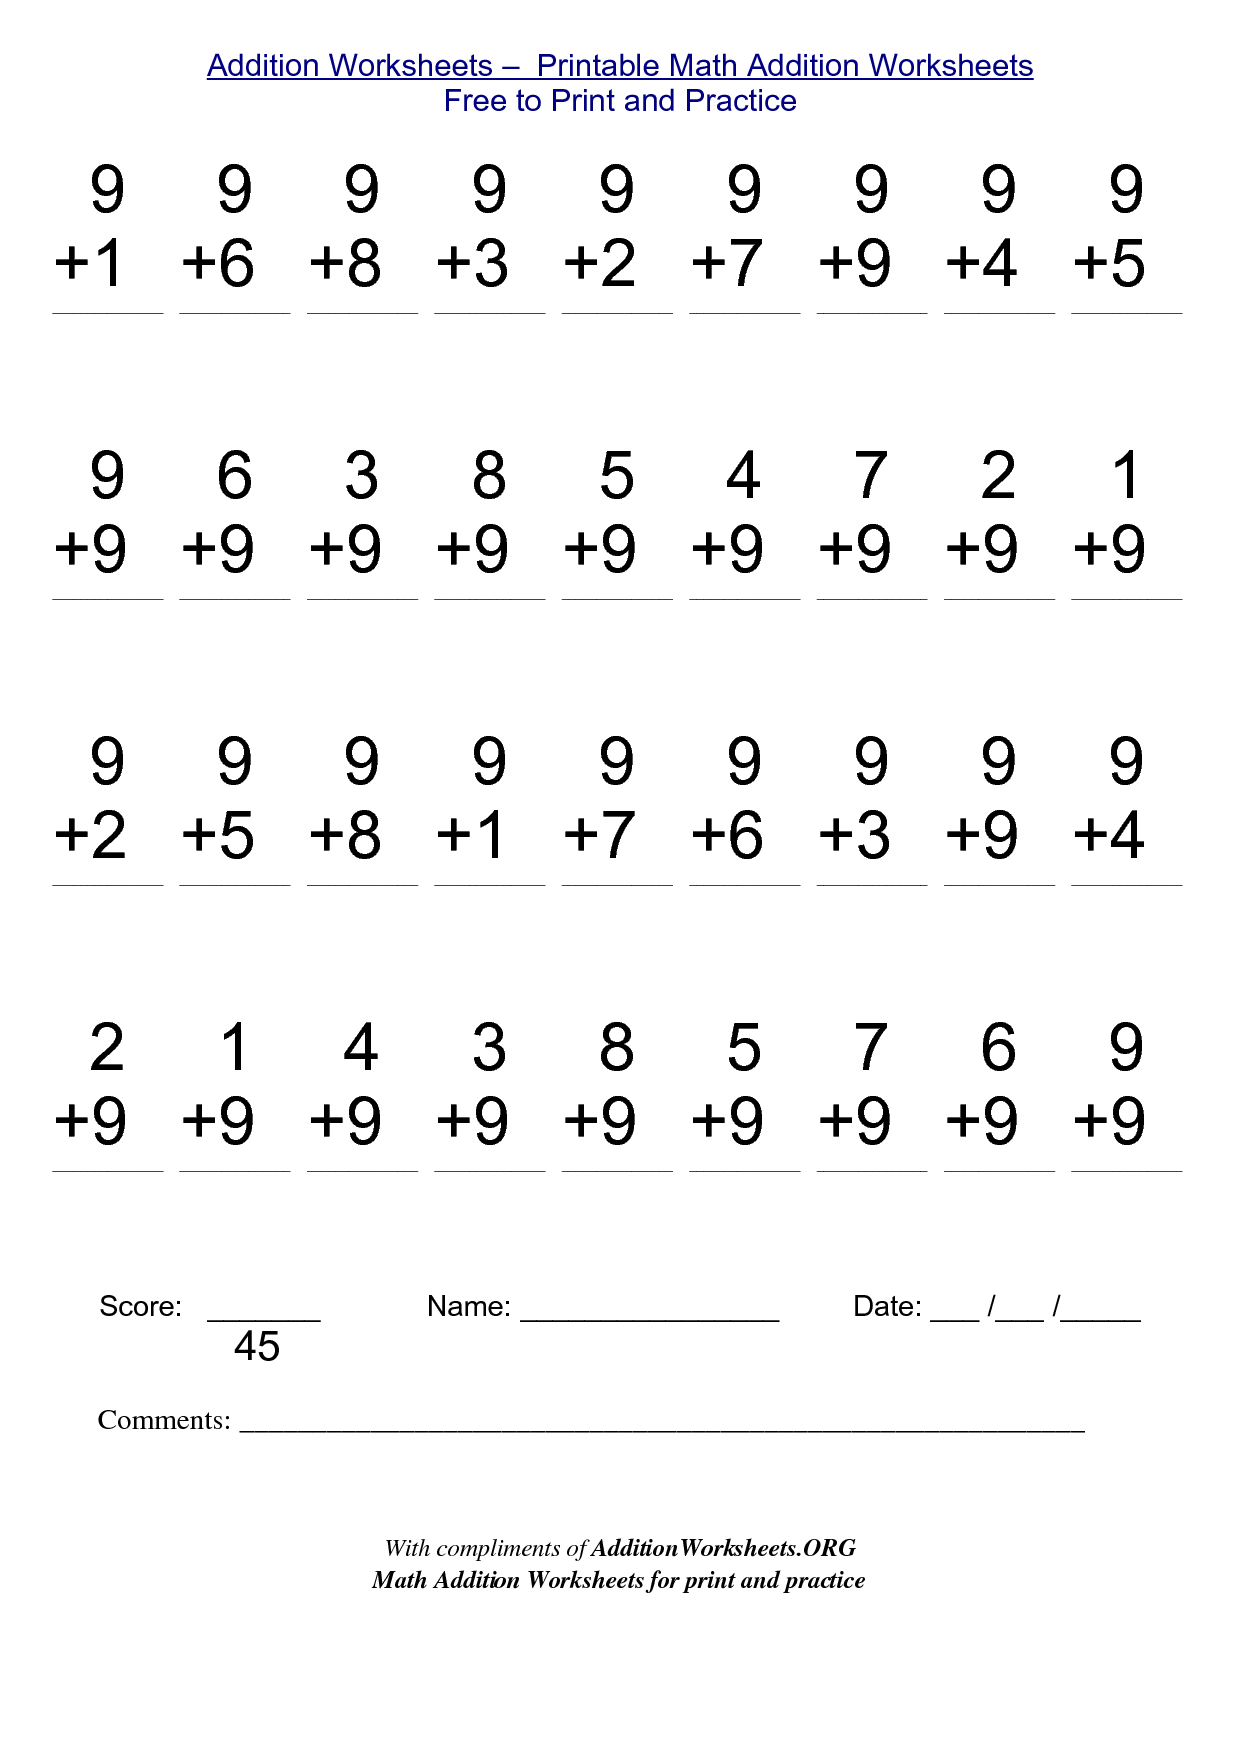 Math Worksheets for Free to Print Alot ME – Free Math Worksheet Printables